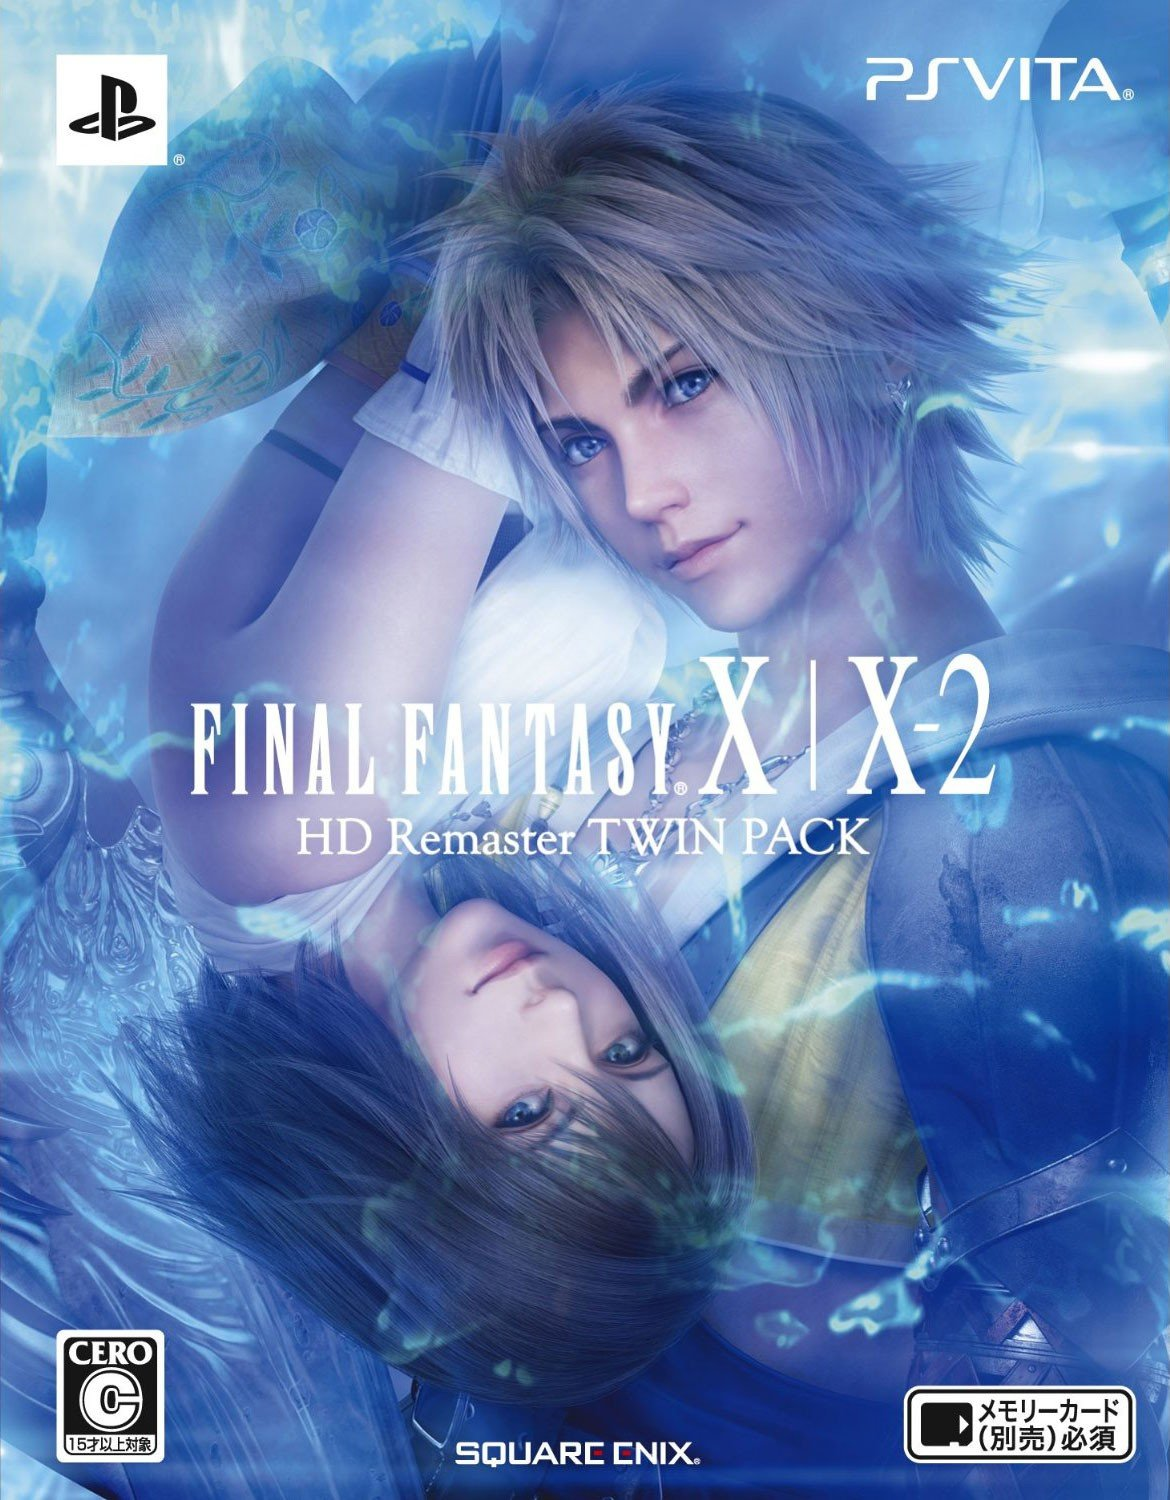 FINAL FANTASY X | X-2 HD Remaster 最终幻想10 | 10-2 高清重制版